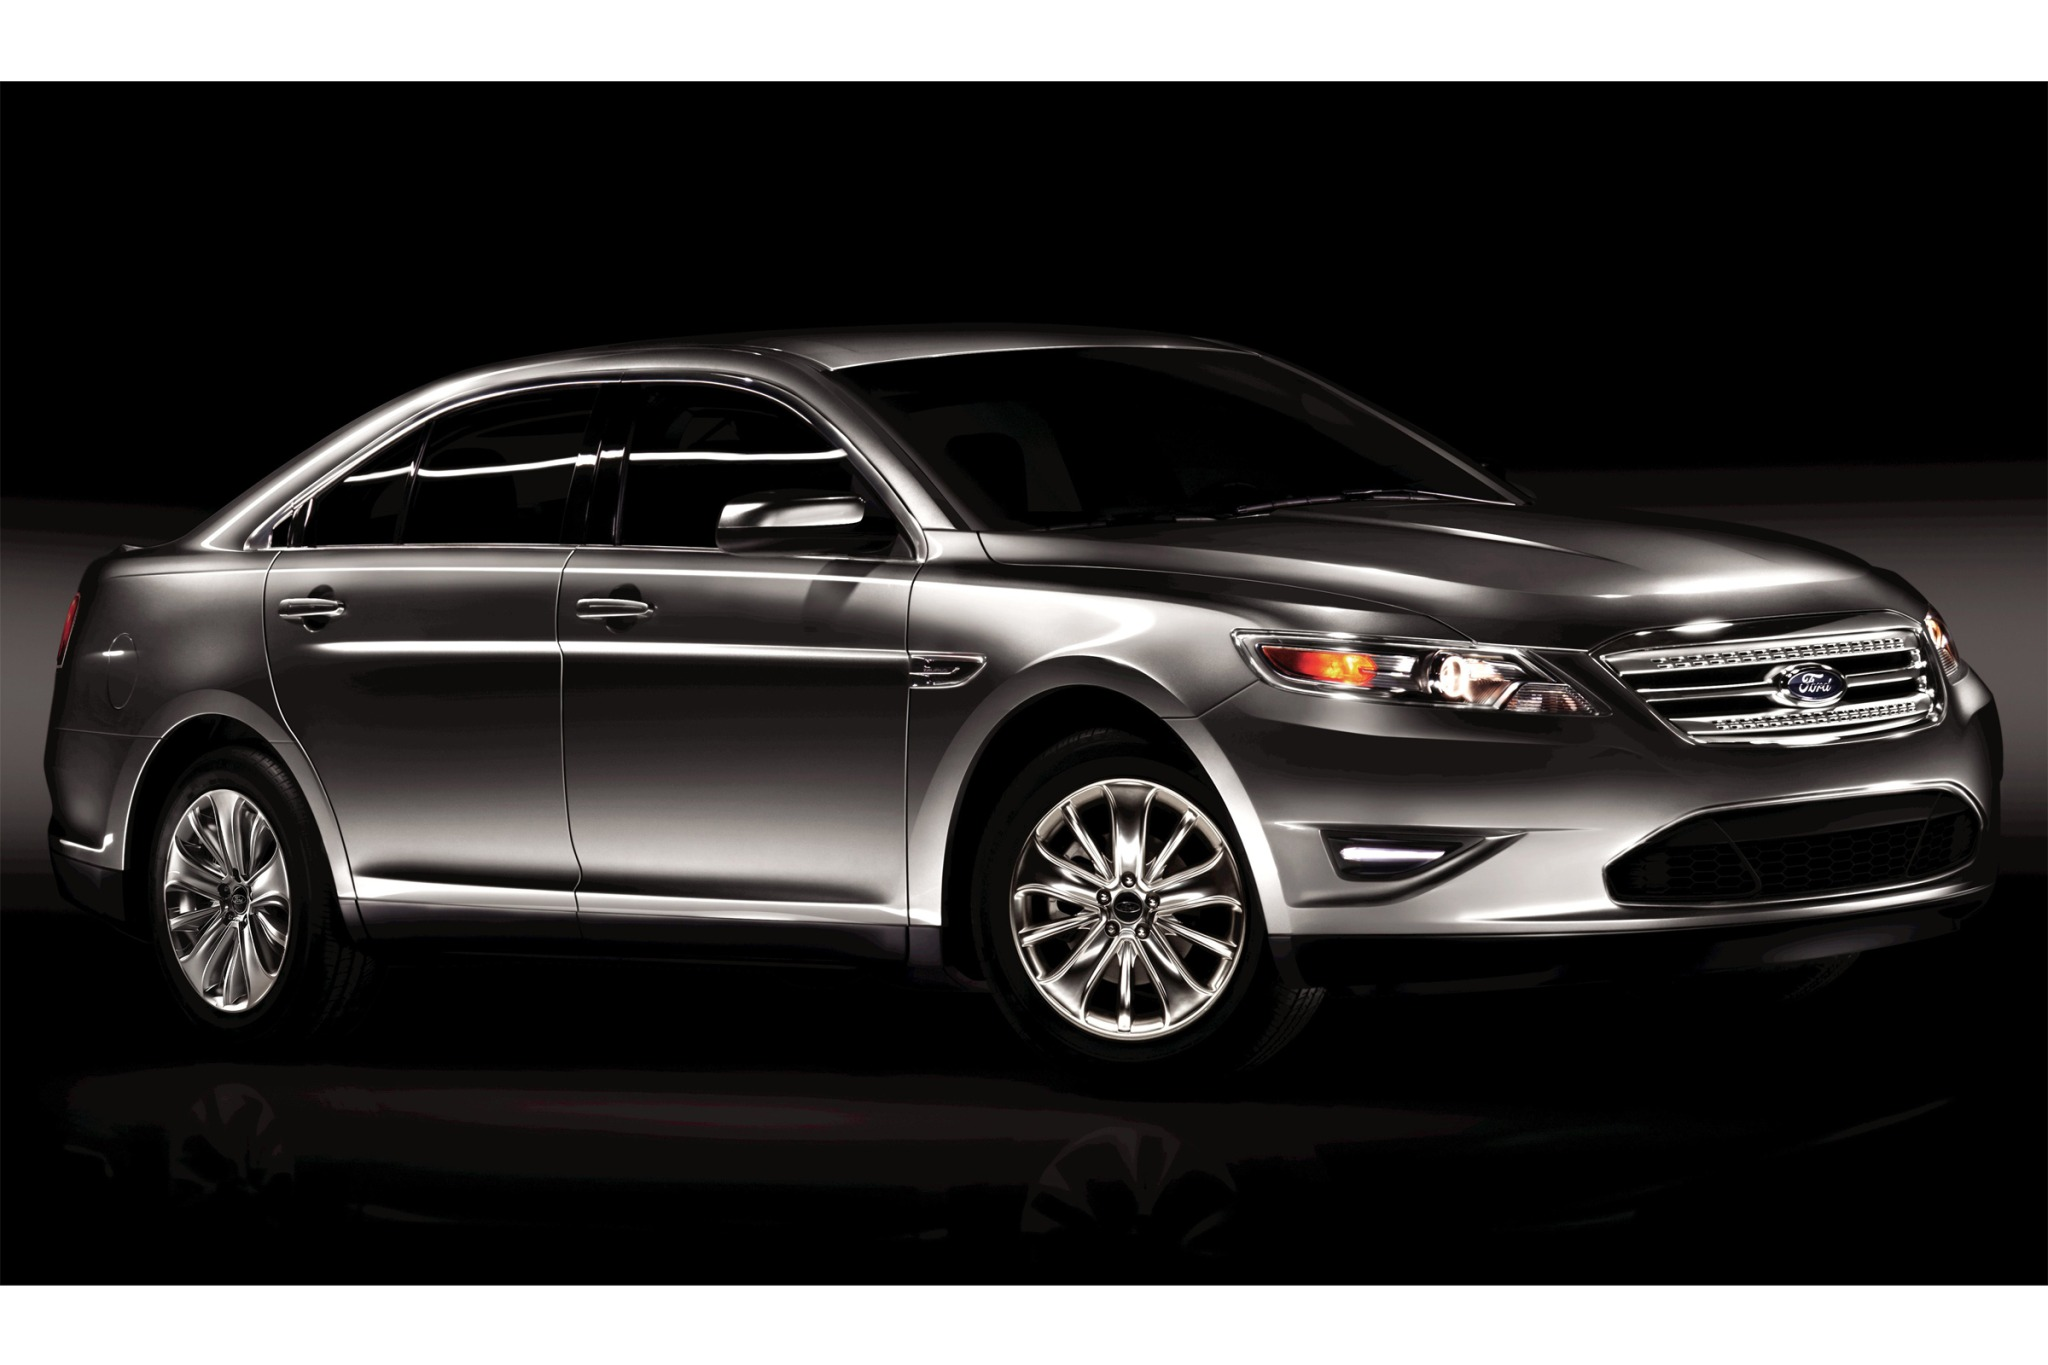 2010 Ford Taurus Limited  exterior #2